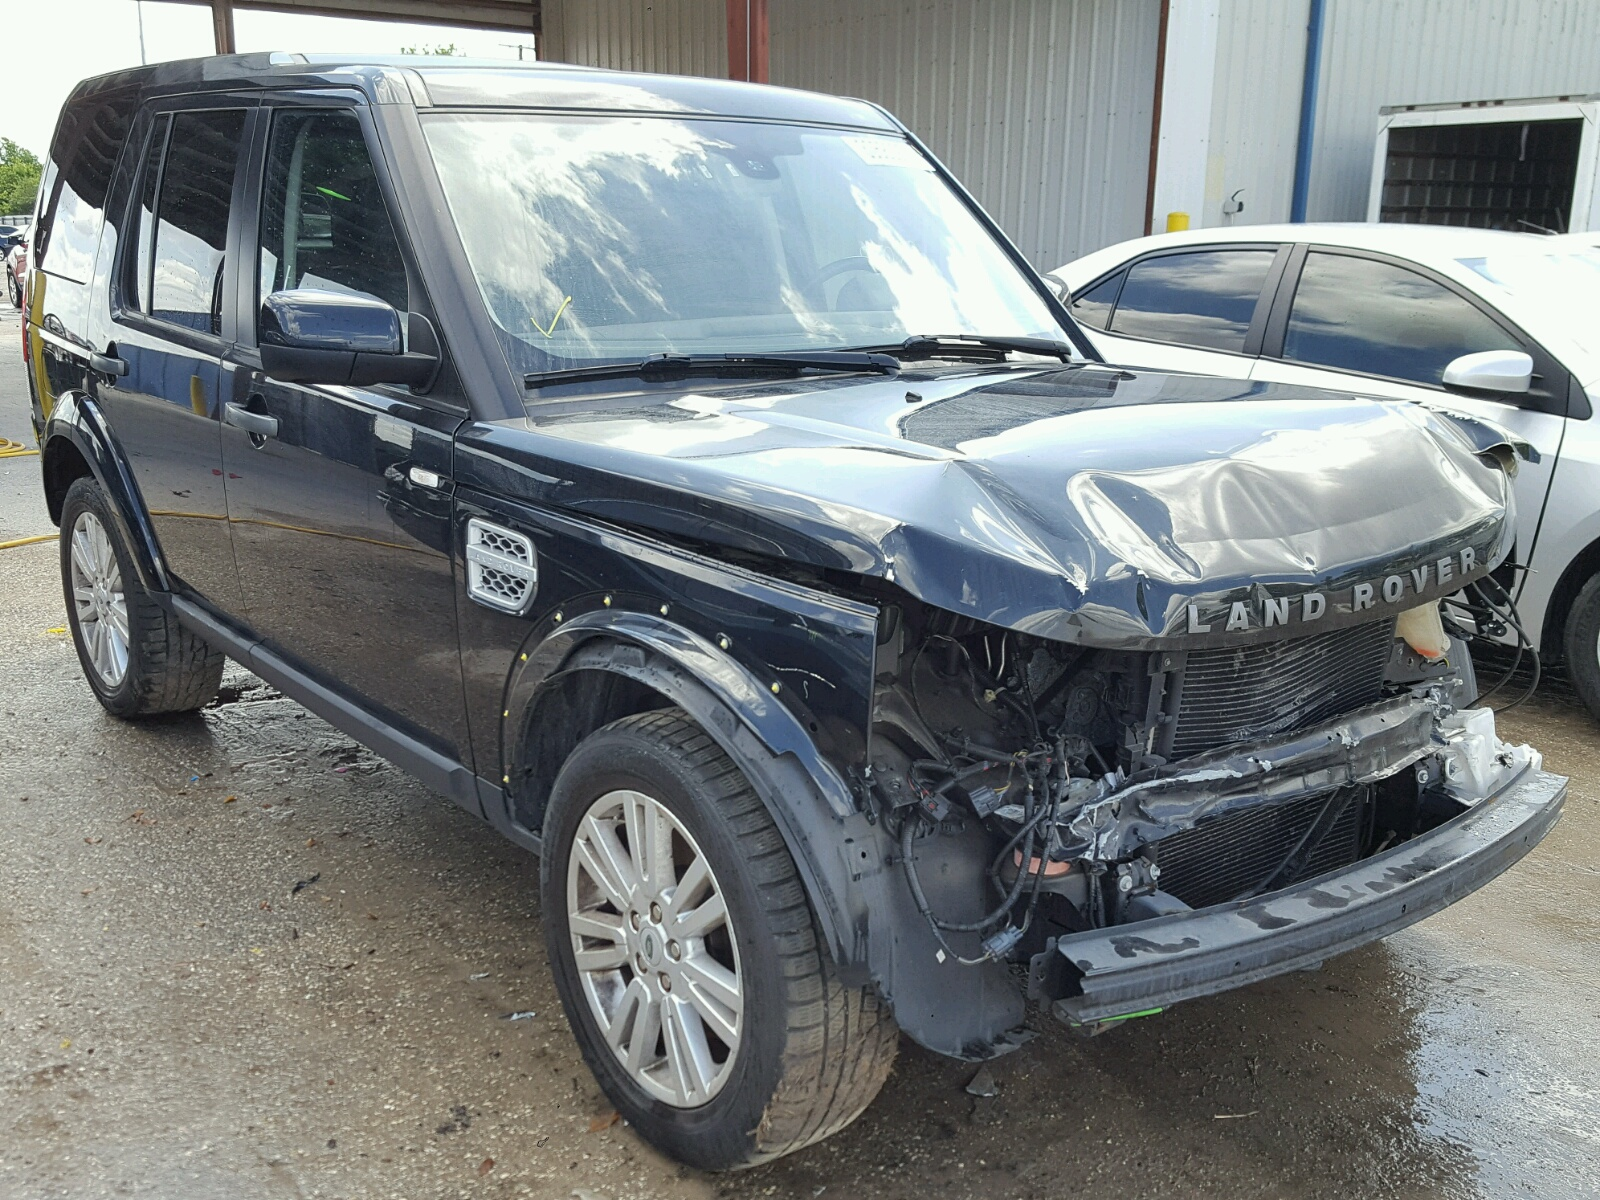 landrover hse cargurus pic land overview rover cars sale for